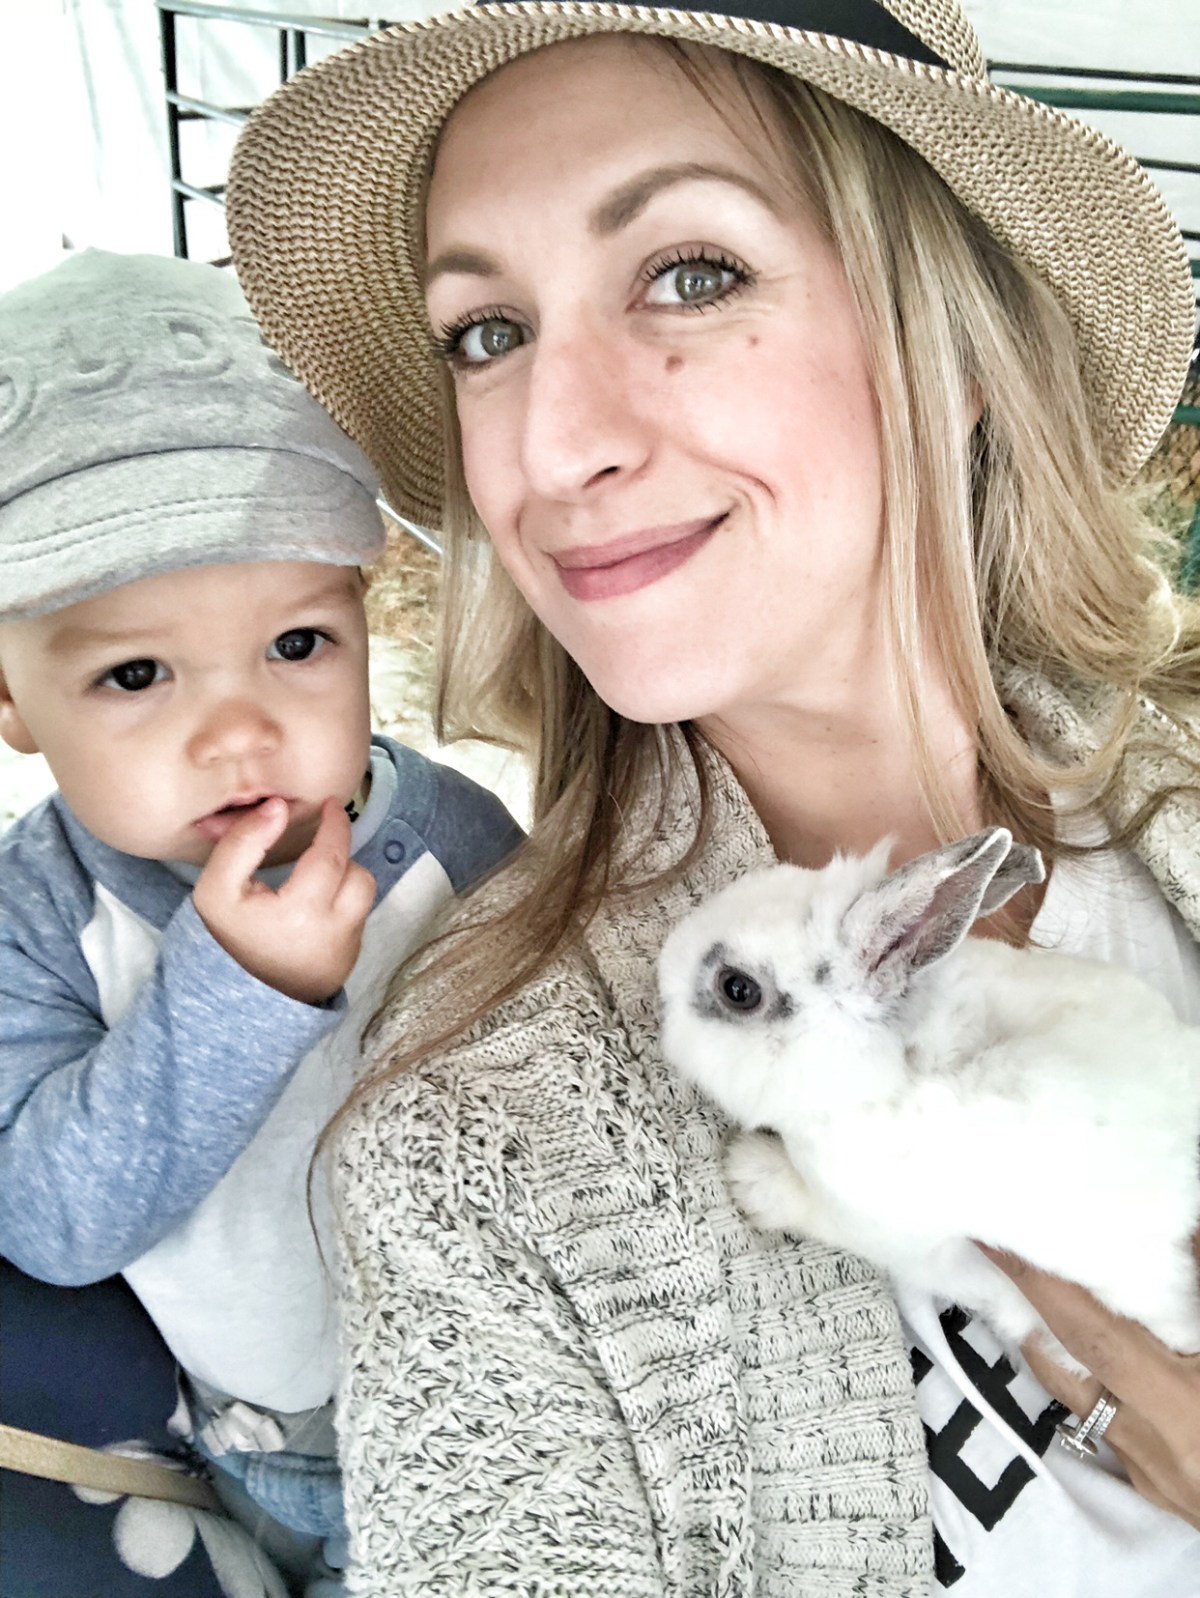 mama and babe with bunny